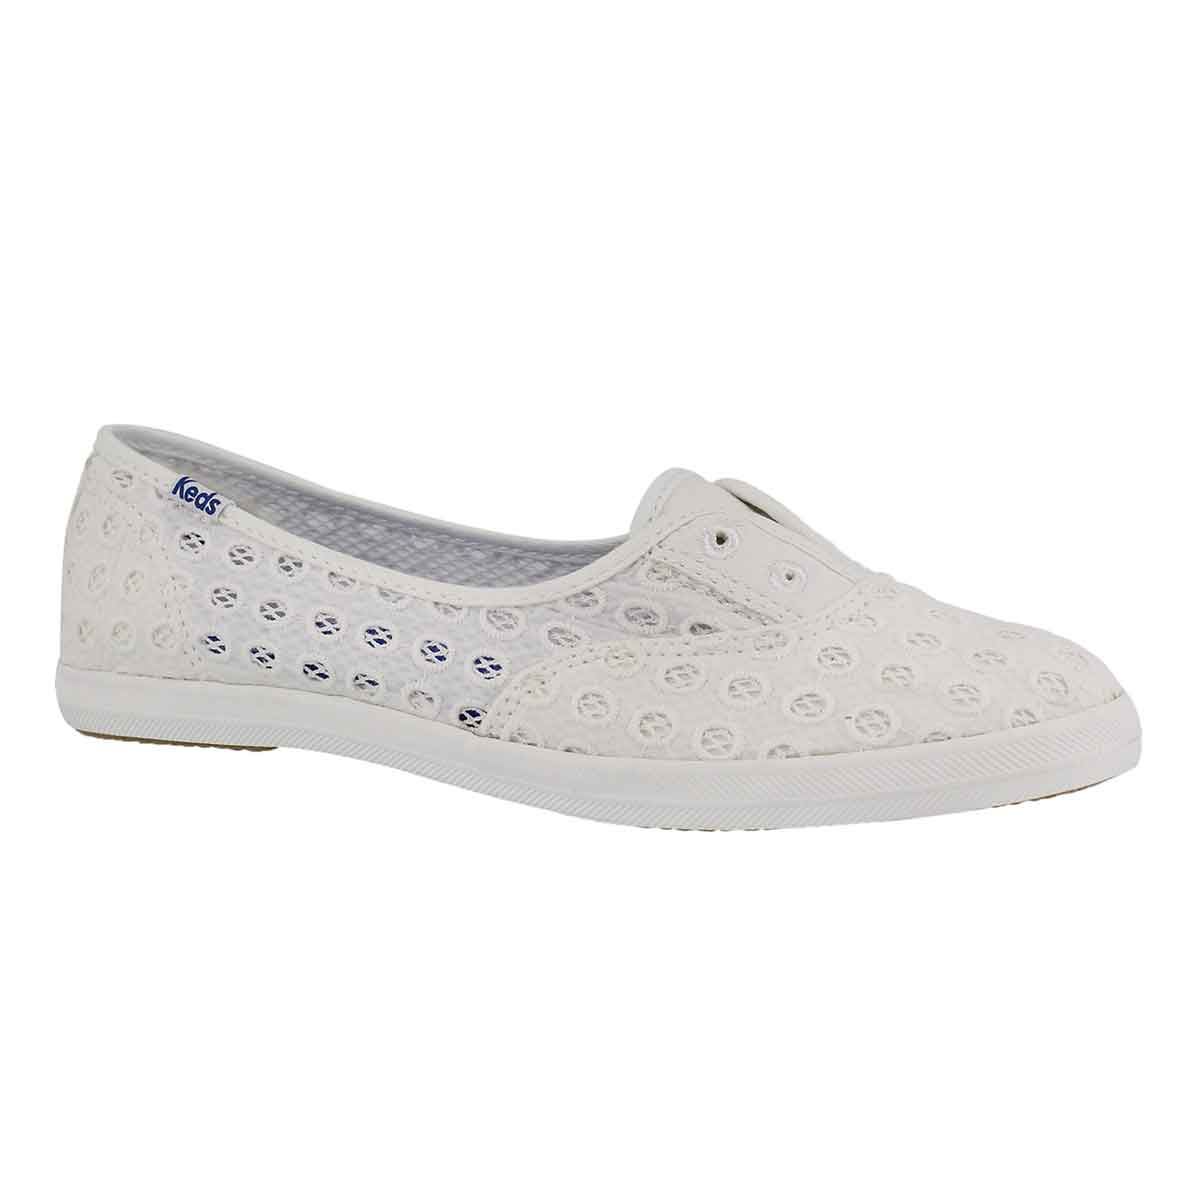 Women's CHILLAX MINI EYELET white fashion sneakers